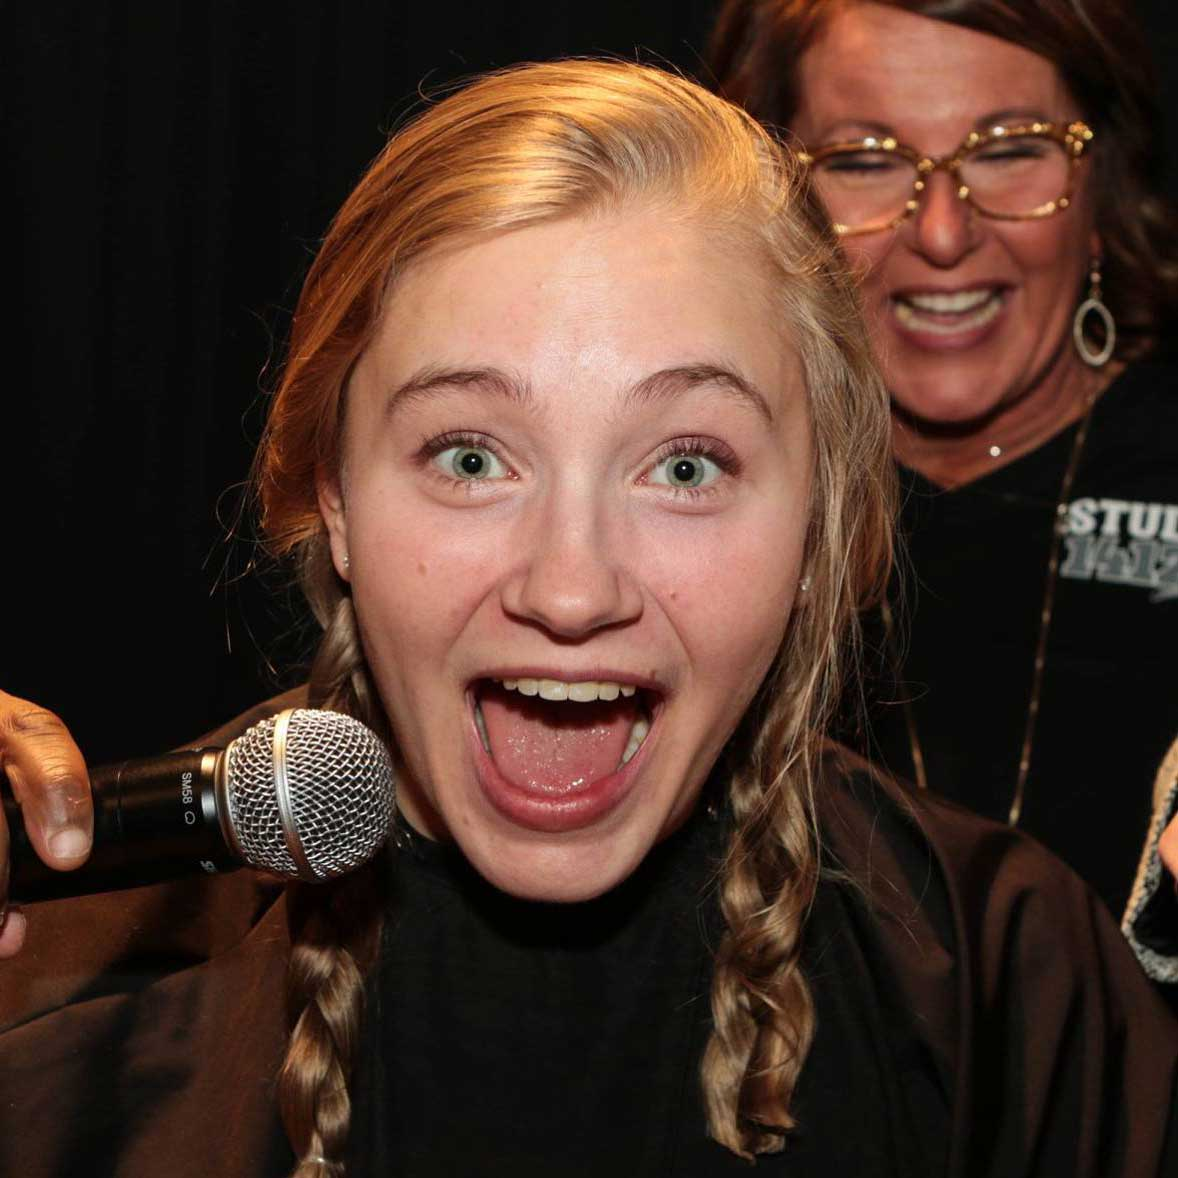 Excited girl with microphone and Bald for Bucks volunteer in background